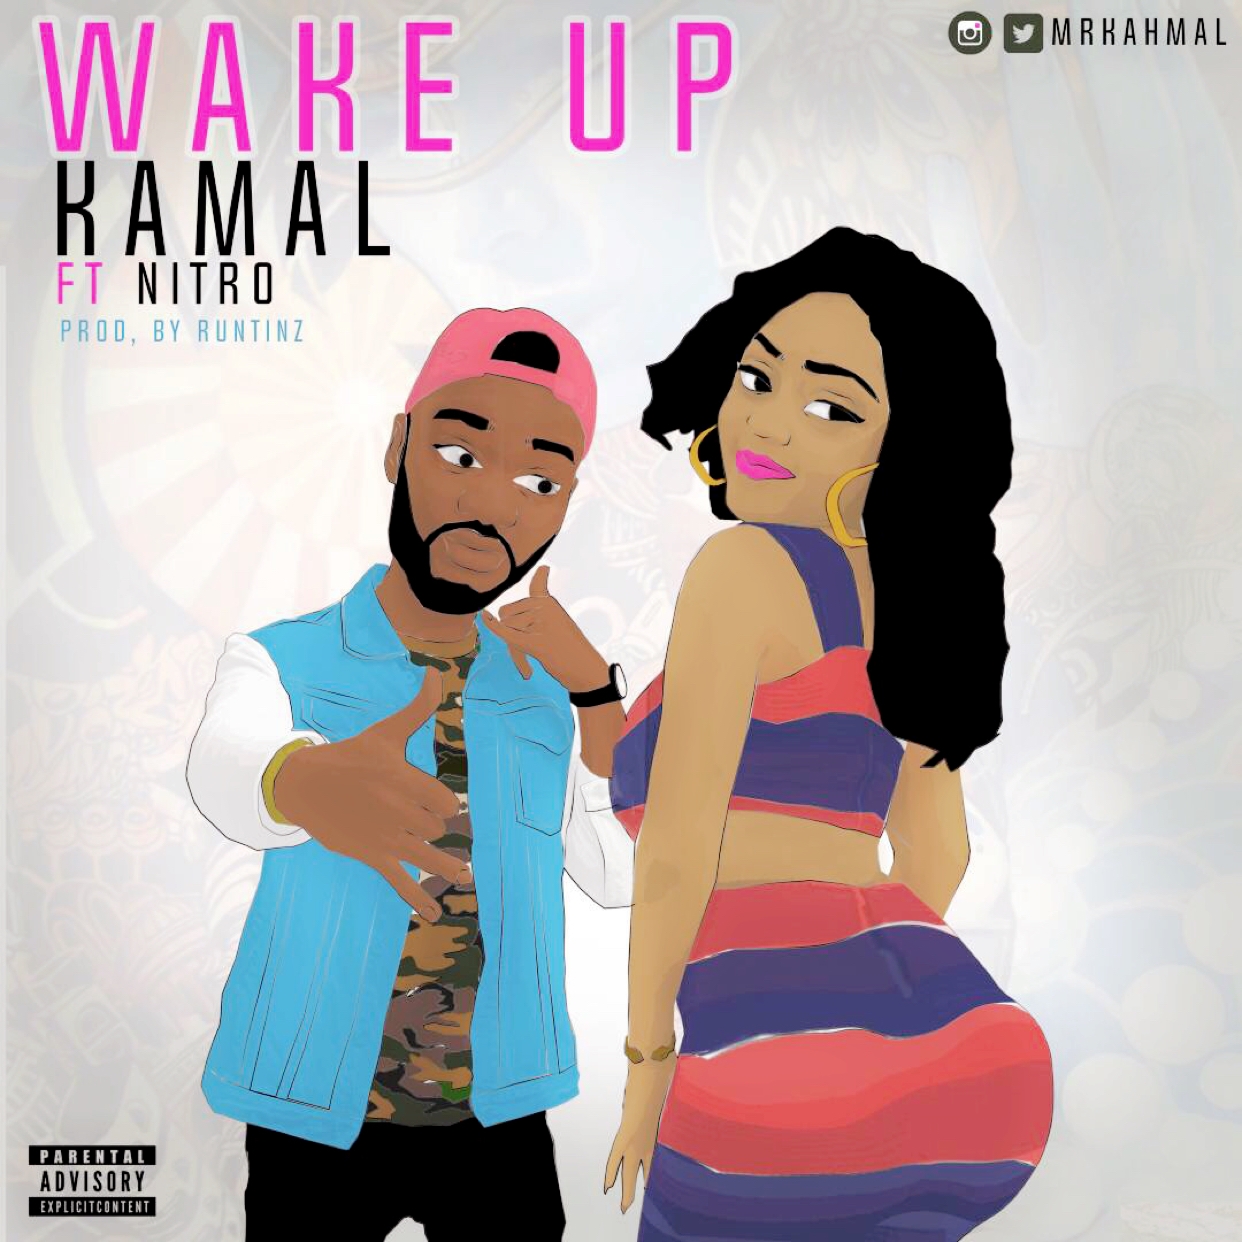 Wake Up - Kamal @MRKAHMAL Ft Nitro (Audio)